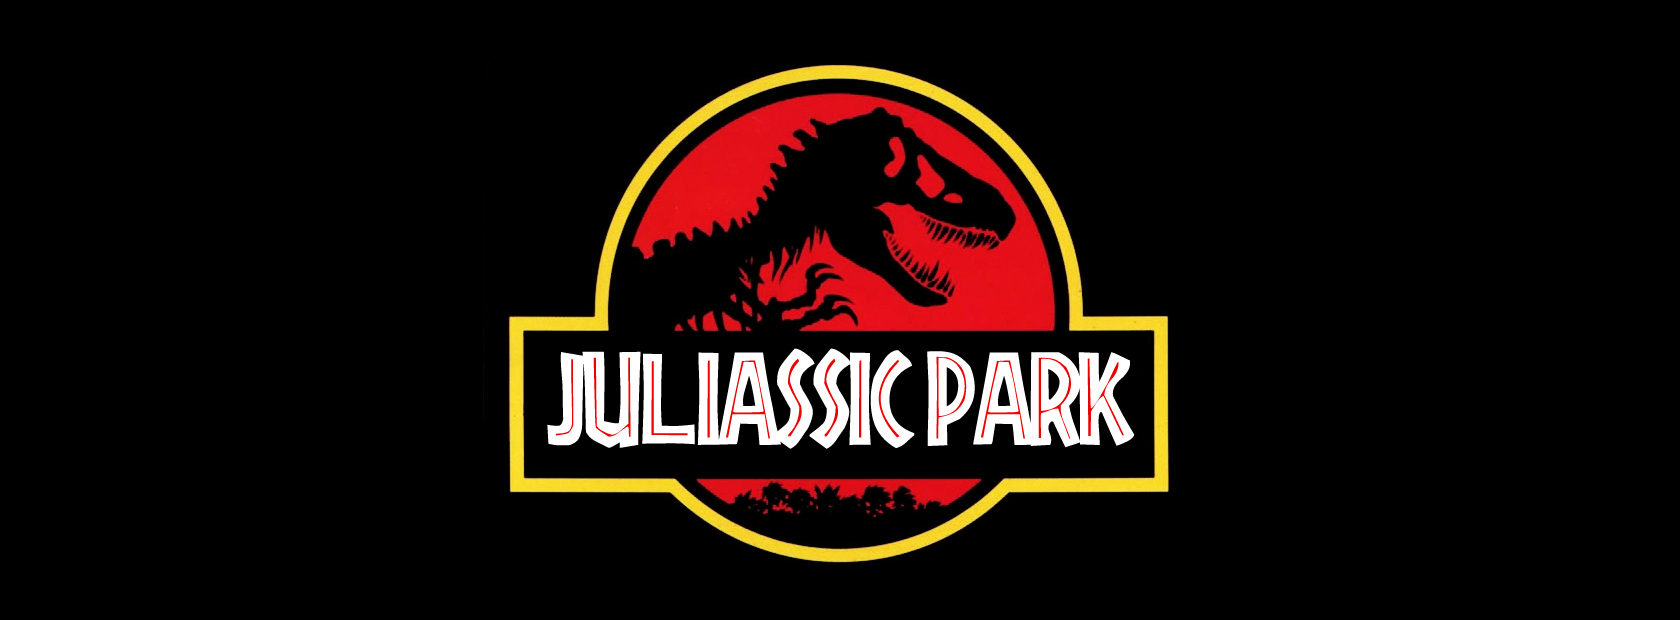 Welcome to Juliassic Park!